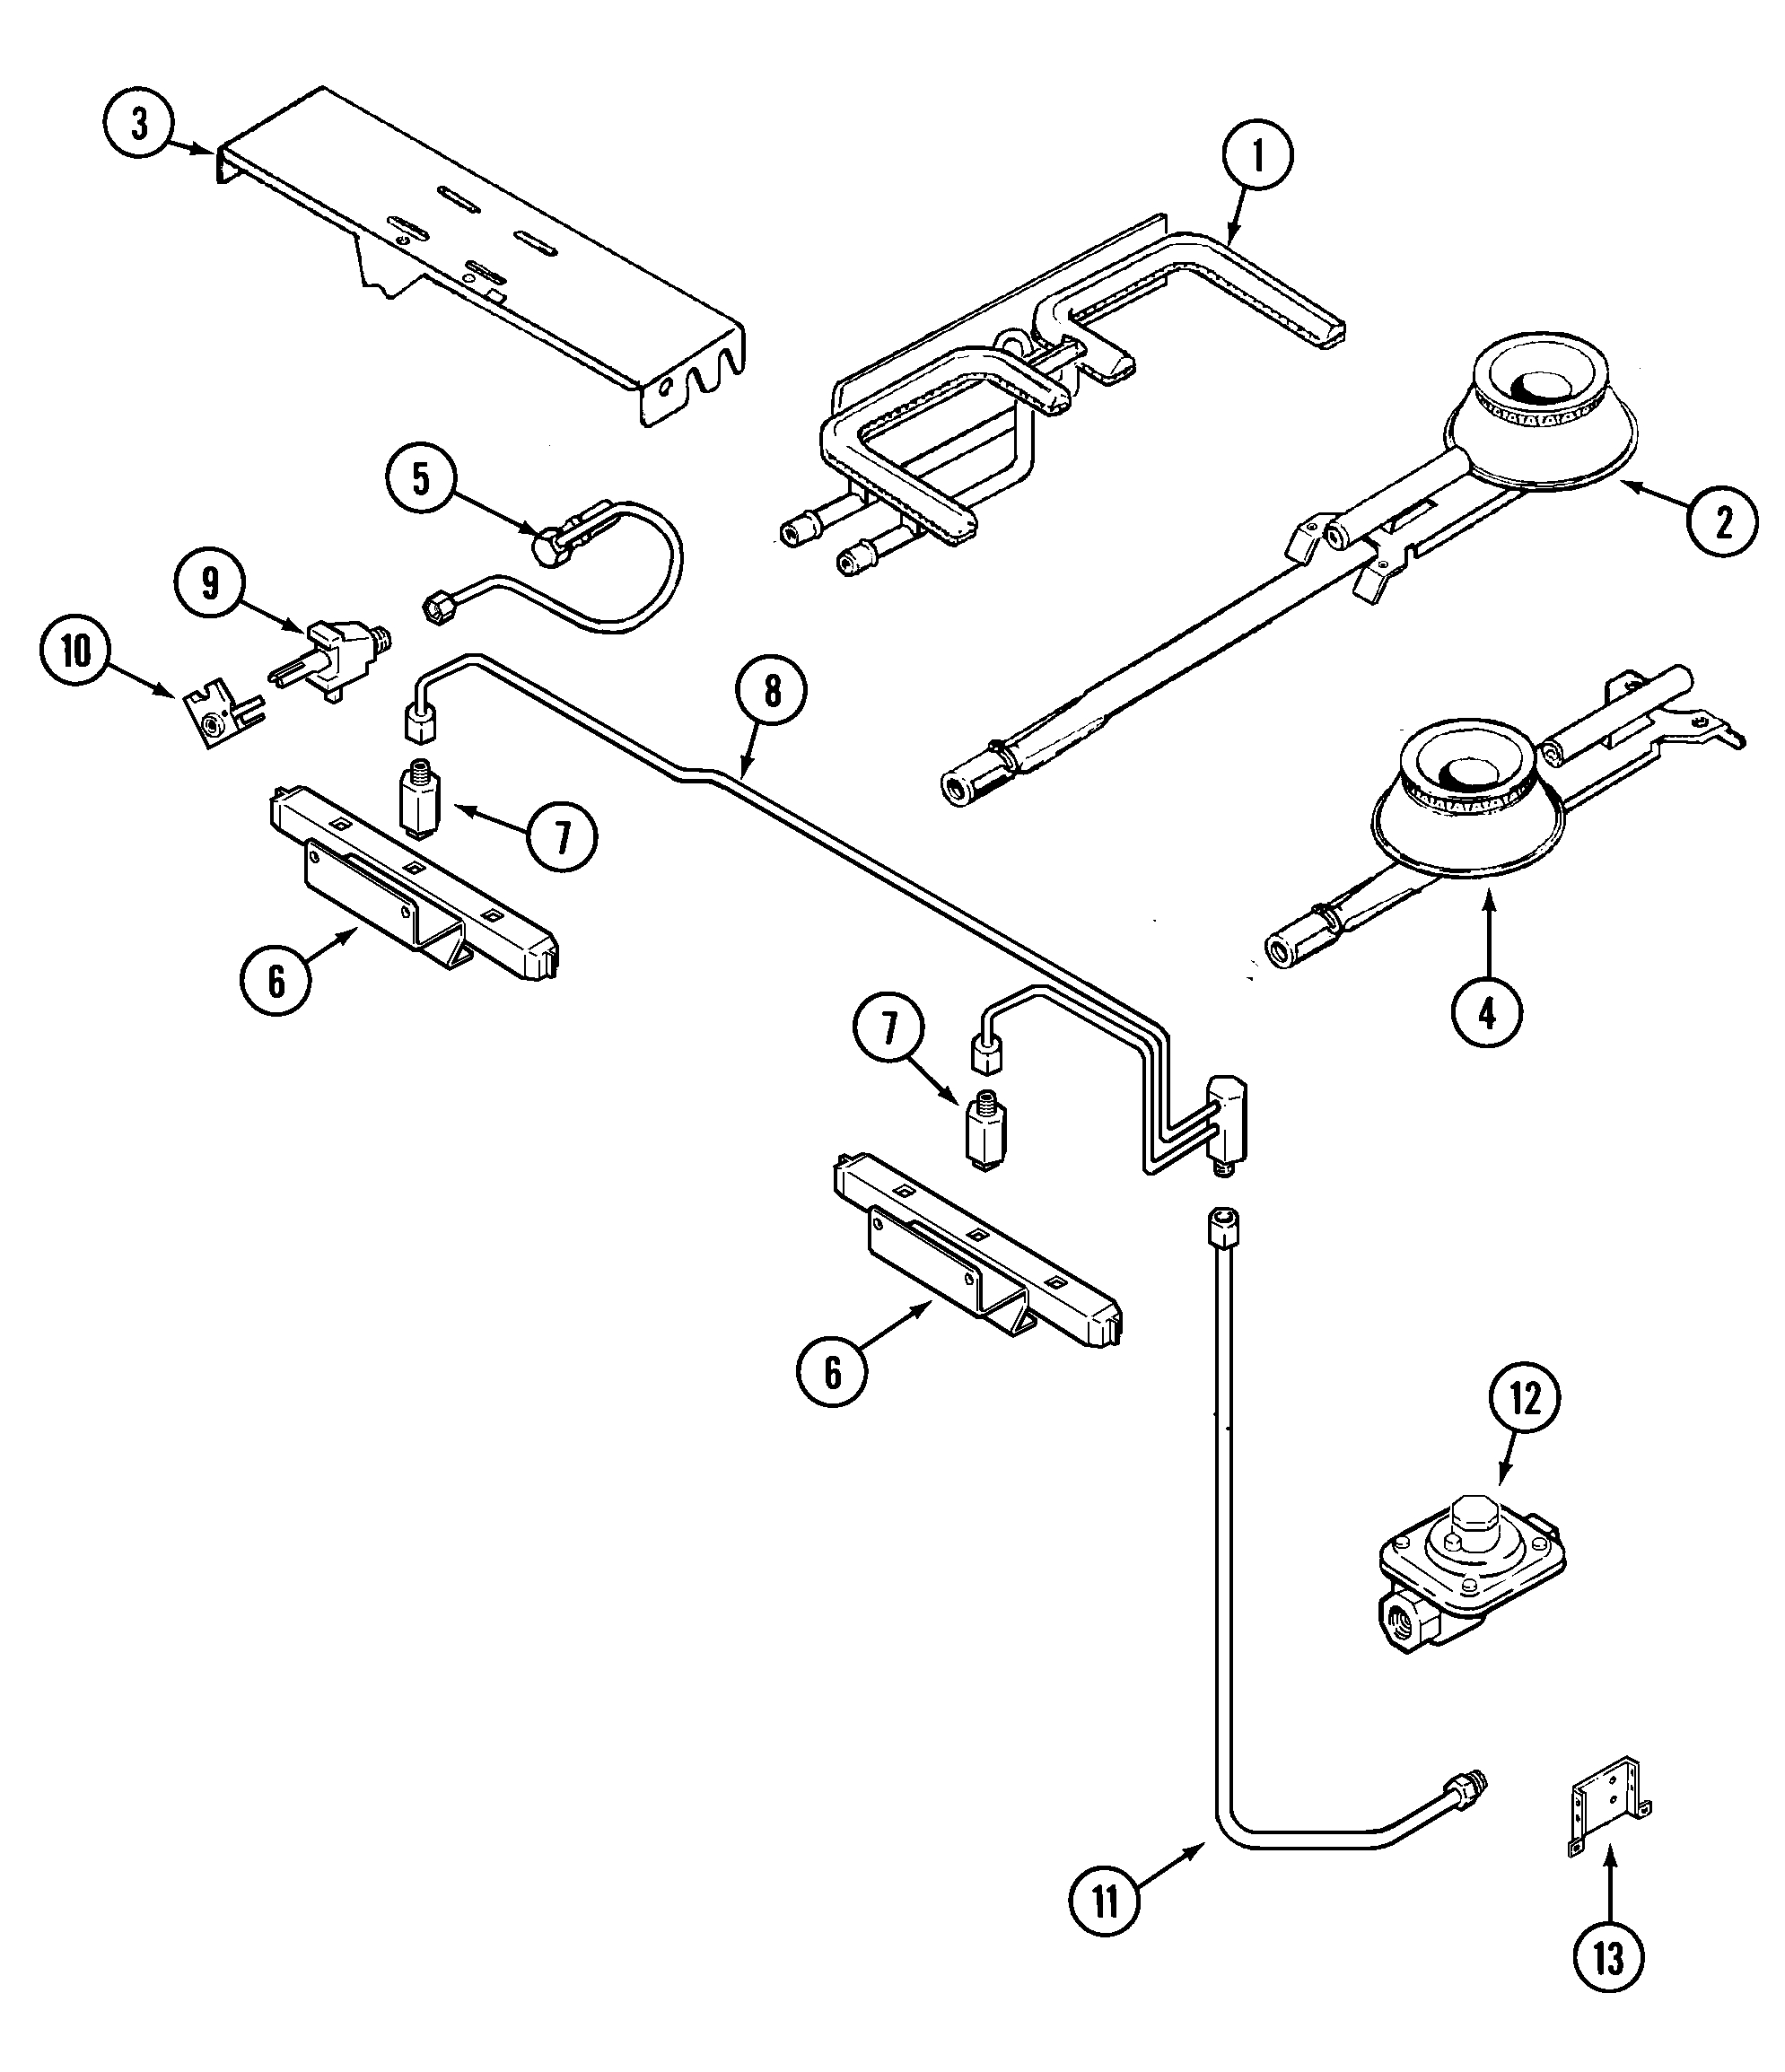 Gas Grill Ignitor Wiring Diagram | Wiring Library - Grill Ignitor Wiring Diagram